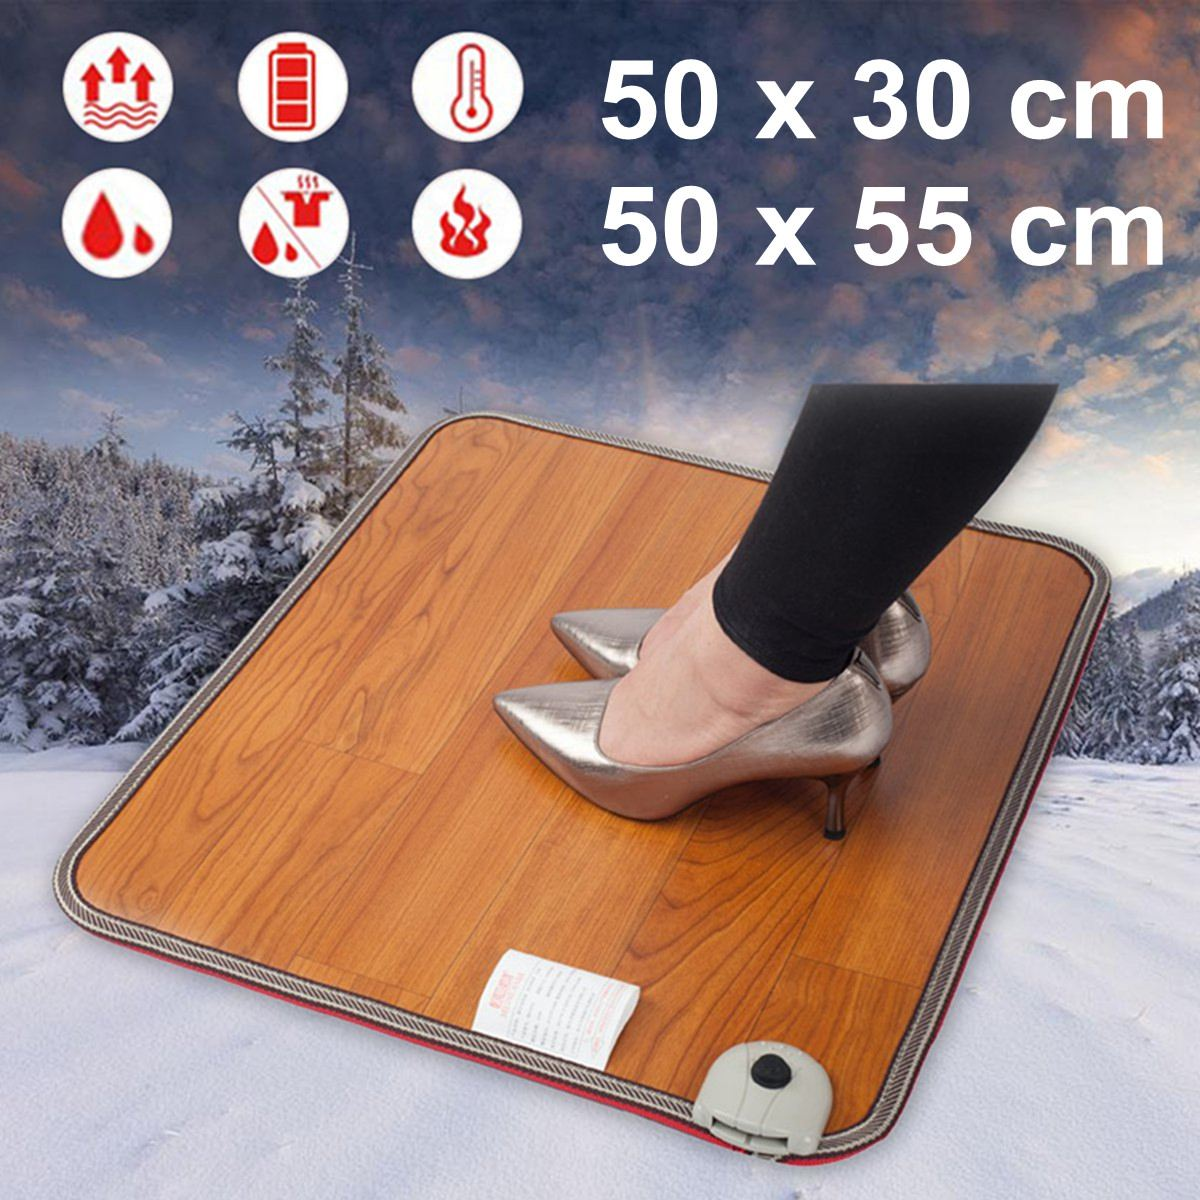 2 Sizes Office Heating Foot Mat Warmer Leather Electric Heating Pad Warm Feet Thermostat Carpet Household Warming Tools 50W 220V2 Sizes Office Heating Foot Mat Warmer Leather Electric Heating Pad Warm Feet Thermostat Carpet Household Warming Tools 50W 220V